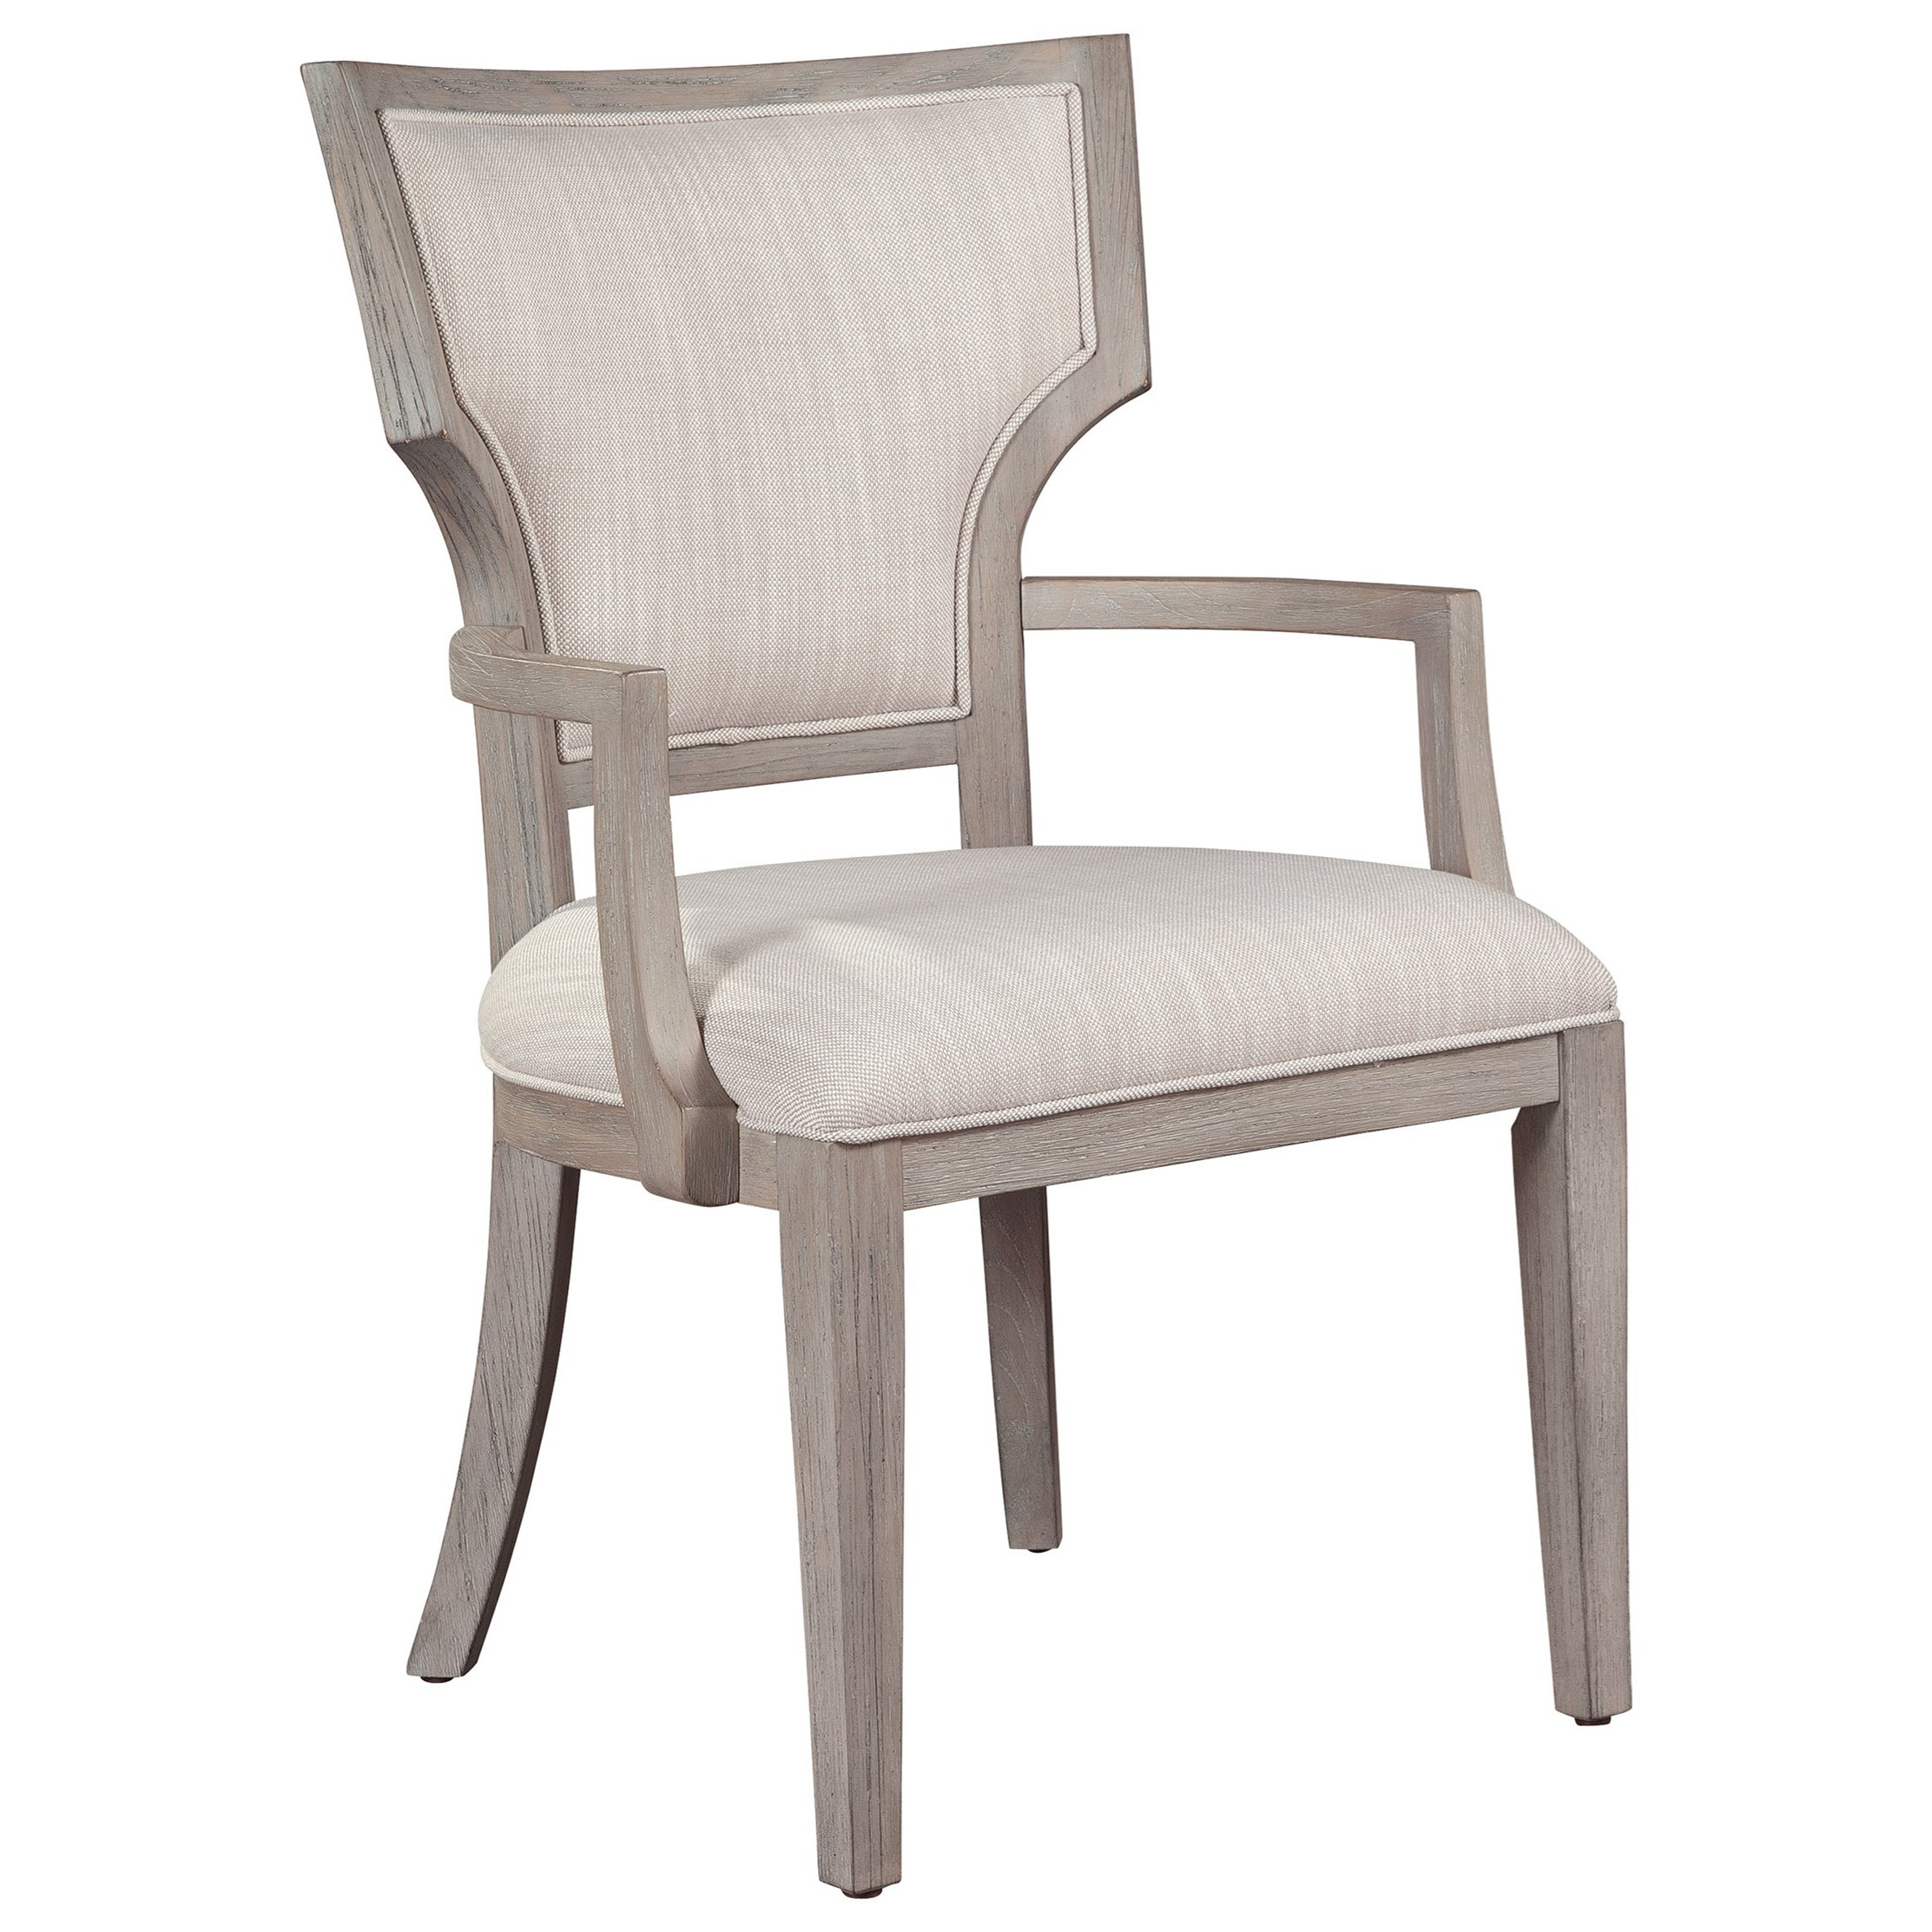 Berkeley Heights Fan Back Arm Chair by Hekman at Alison Craig Home Furnishings